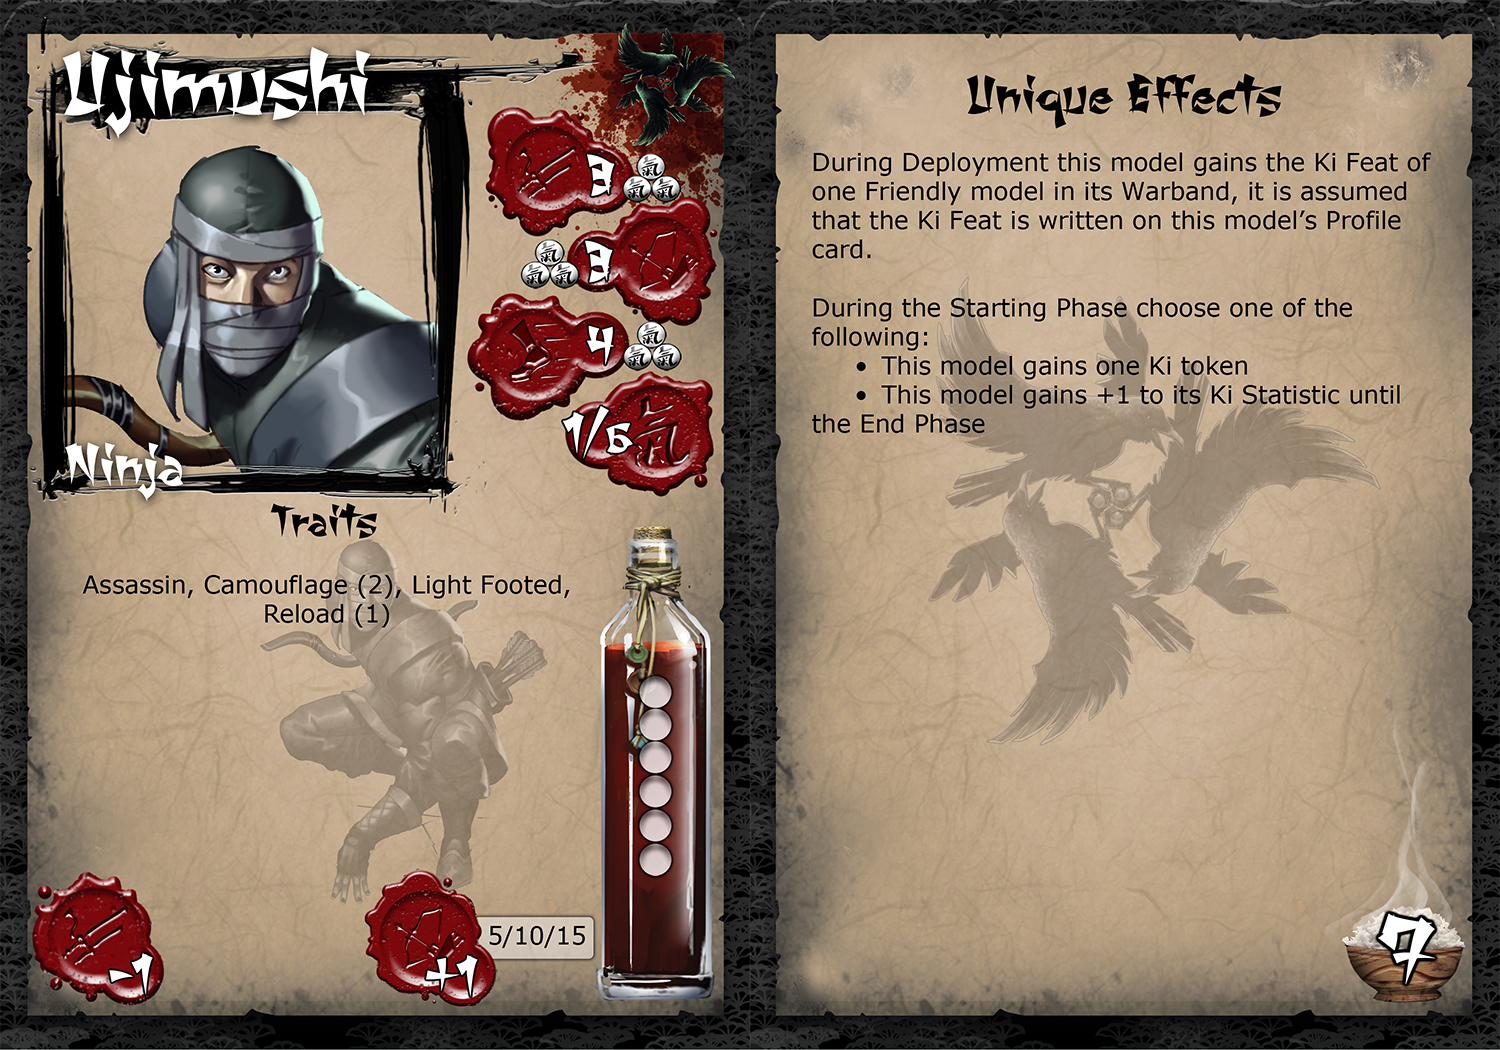 ujimushi_profile_card